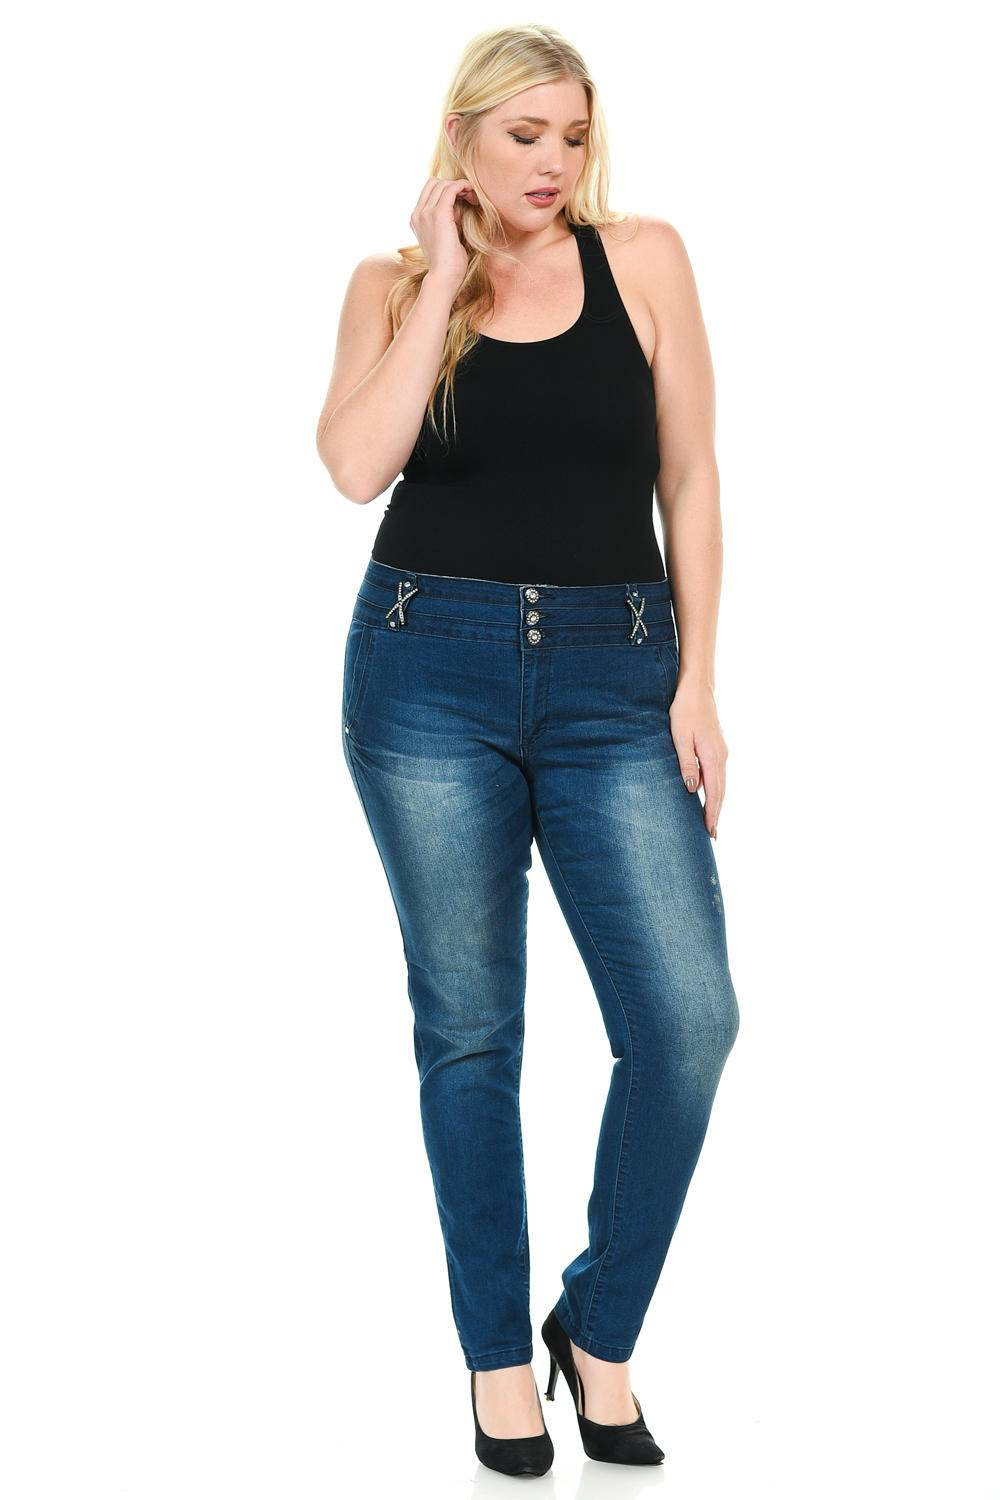 033dd6e135b Sweet Look Women s Jeans - Plus Size - High Waist - Push Up - Style 001